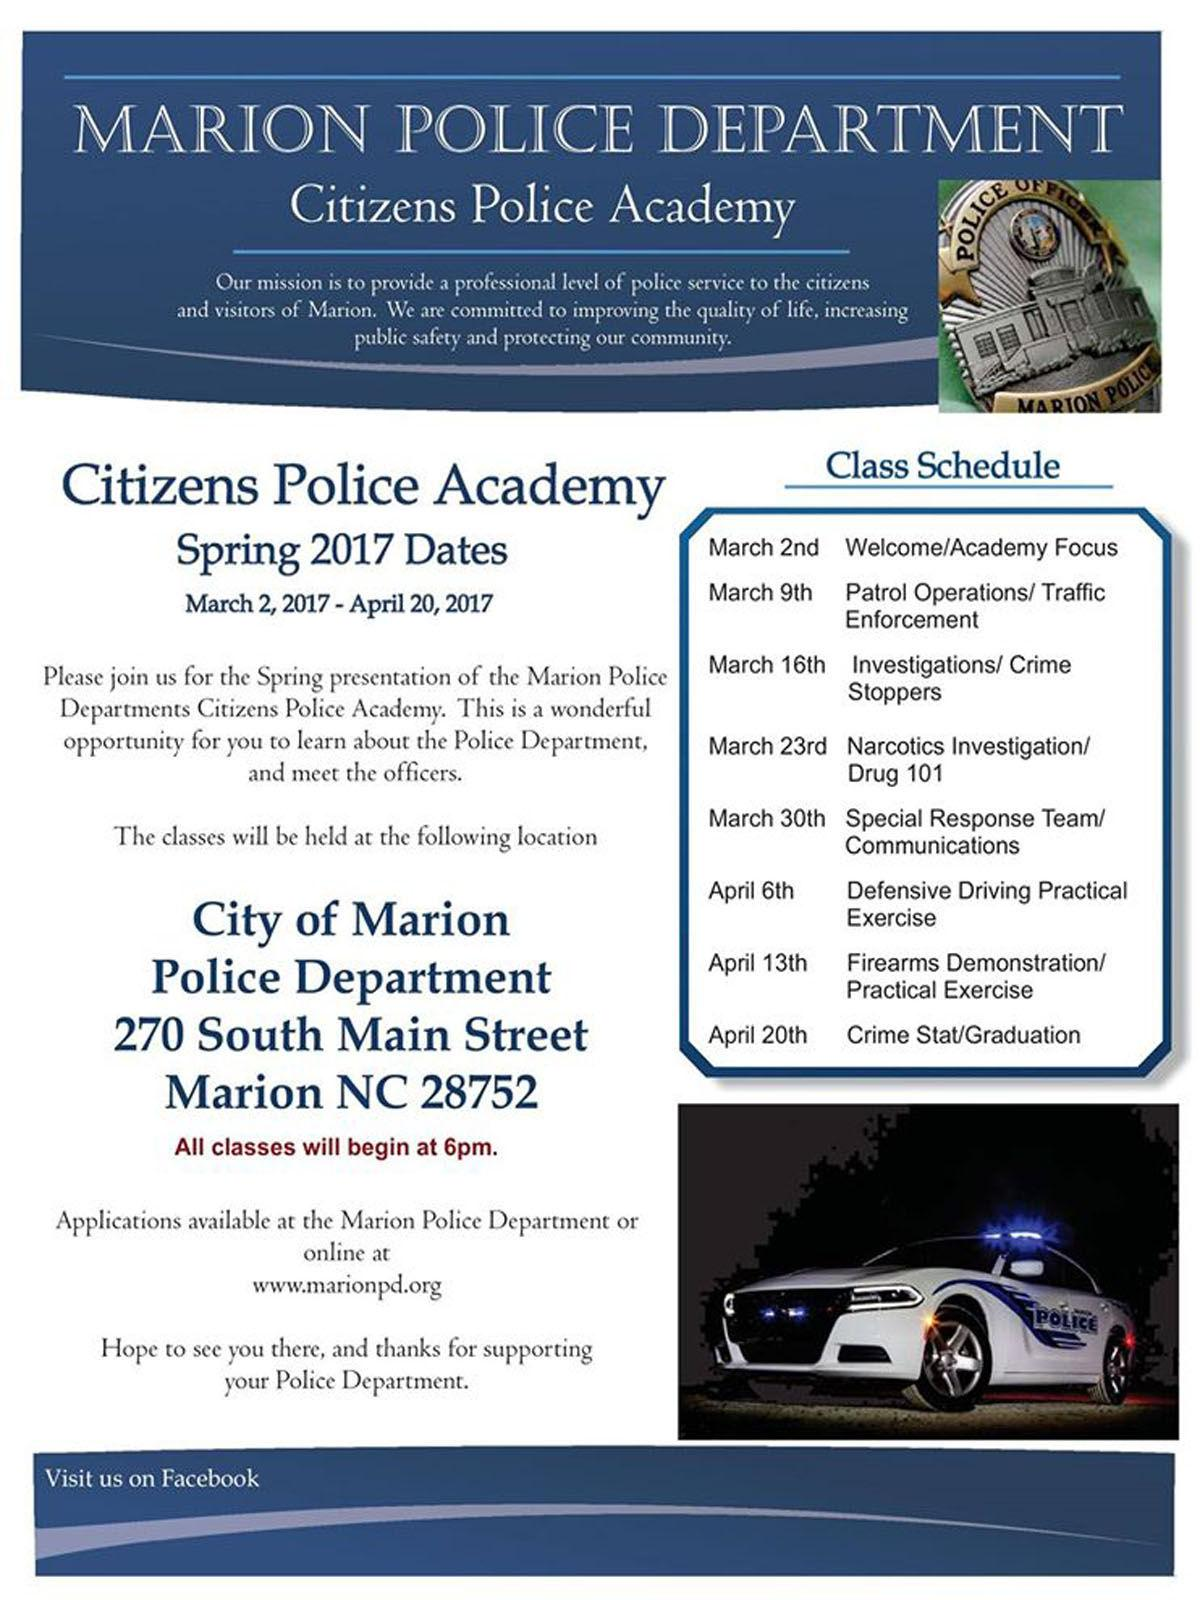 Citizen's Police Academy: Program to inform, educate Marion public